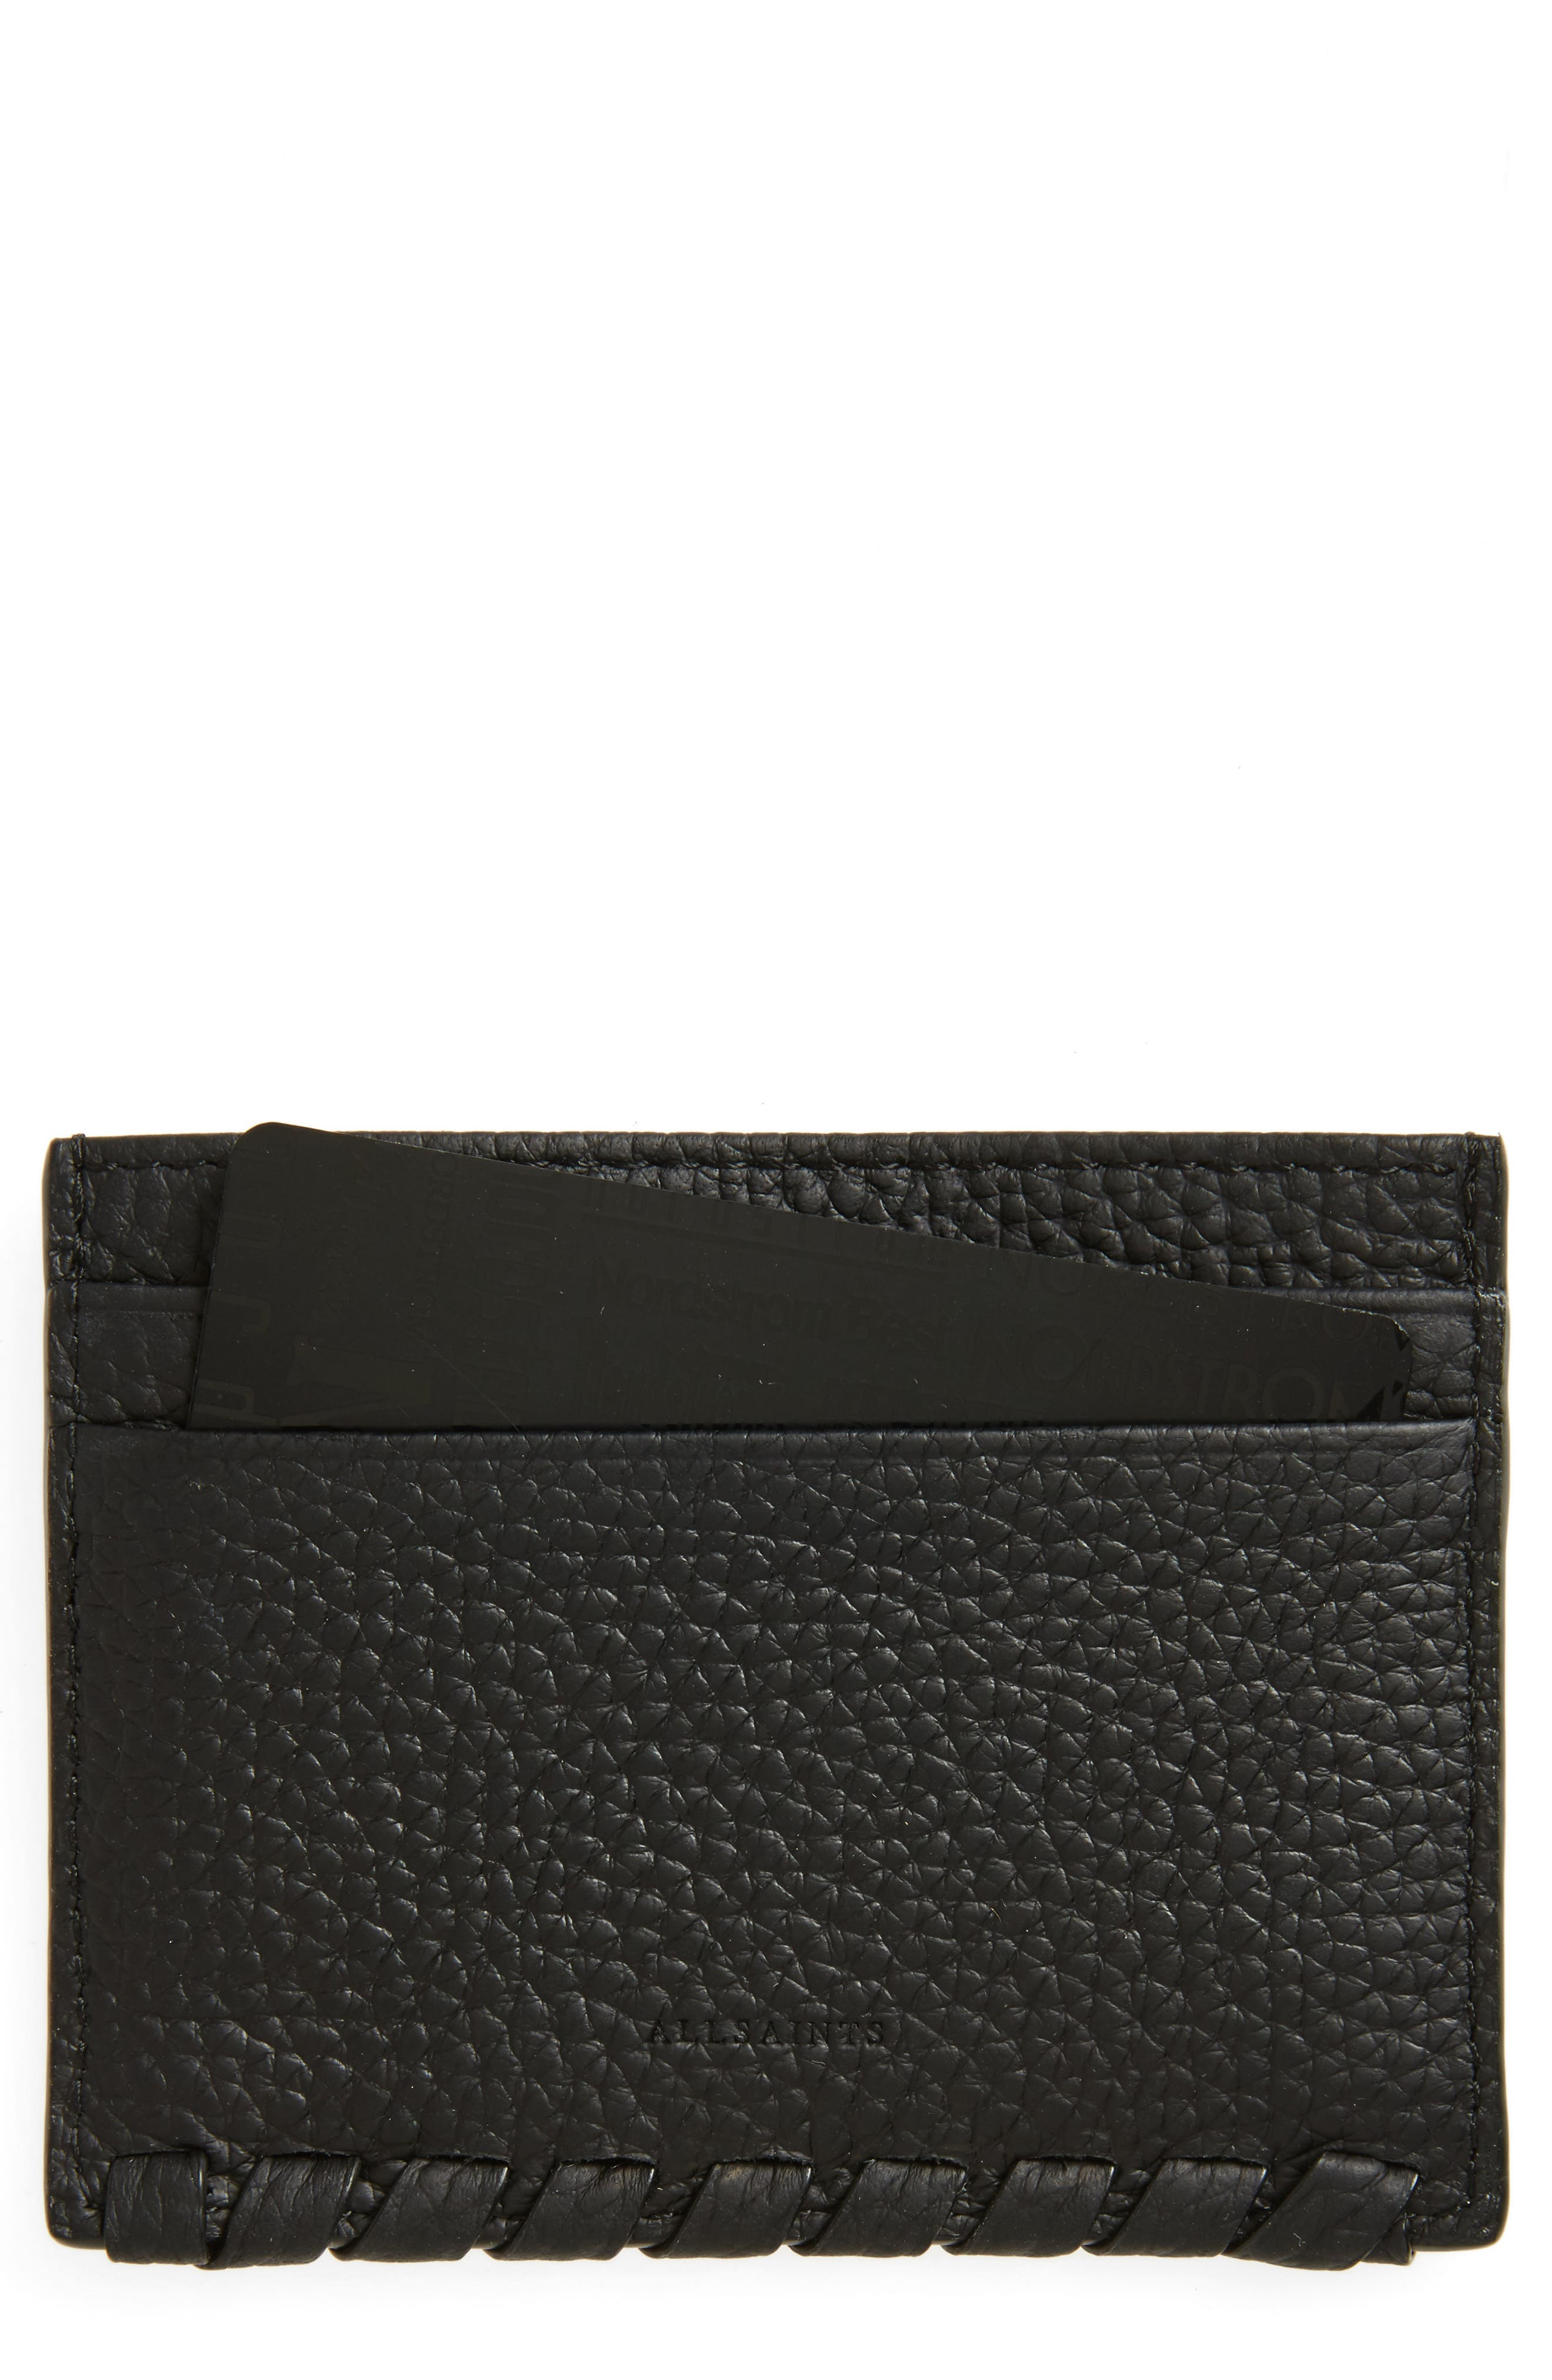 Main Image - ALLSAINTS Kita Pebbled Leather Card Case